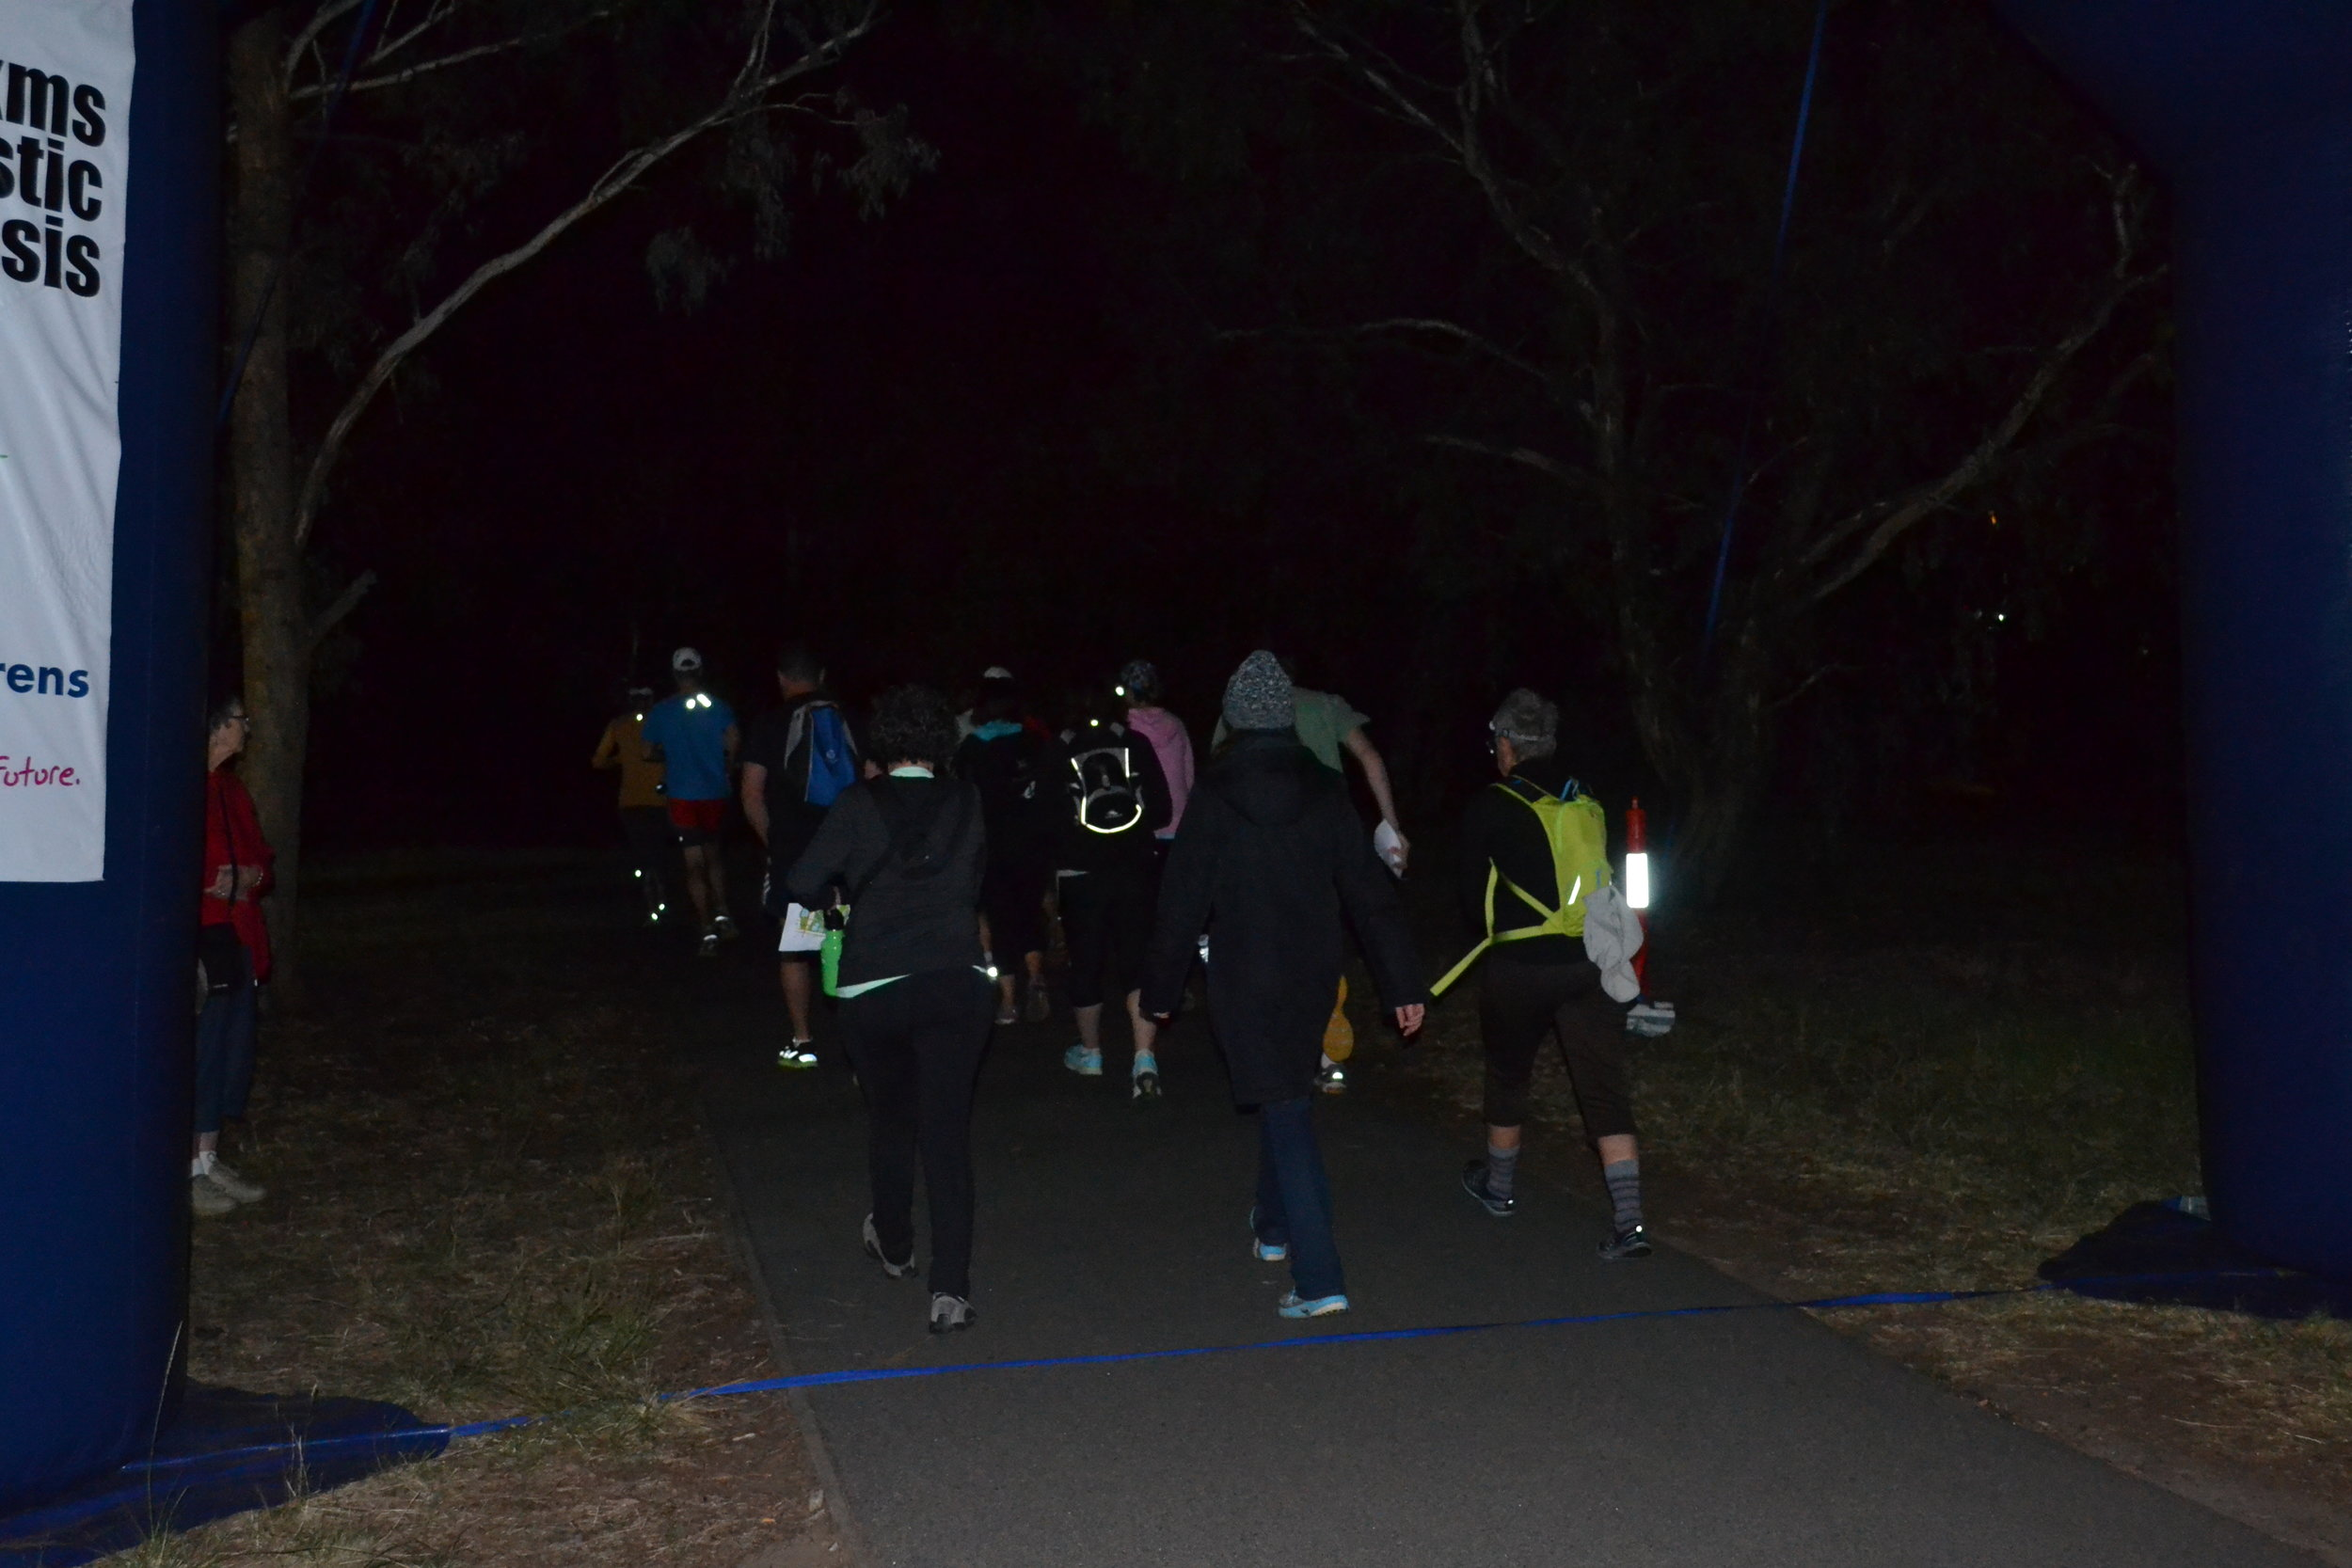 DSC_0207 - Into the park 6am.JPG